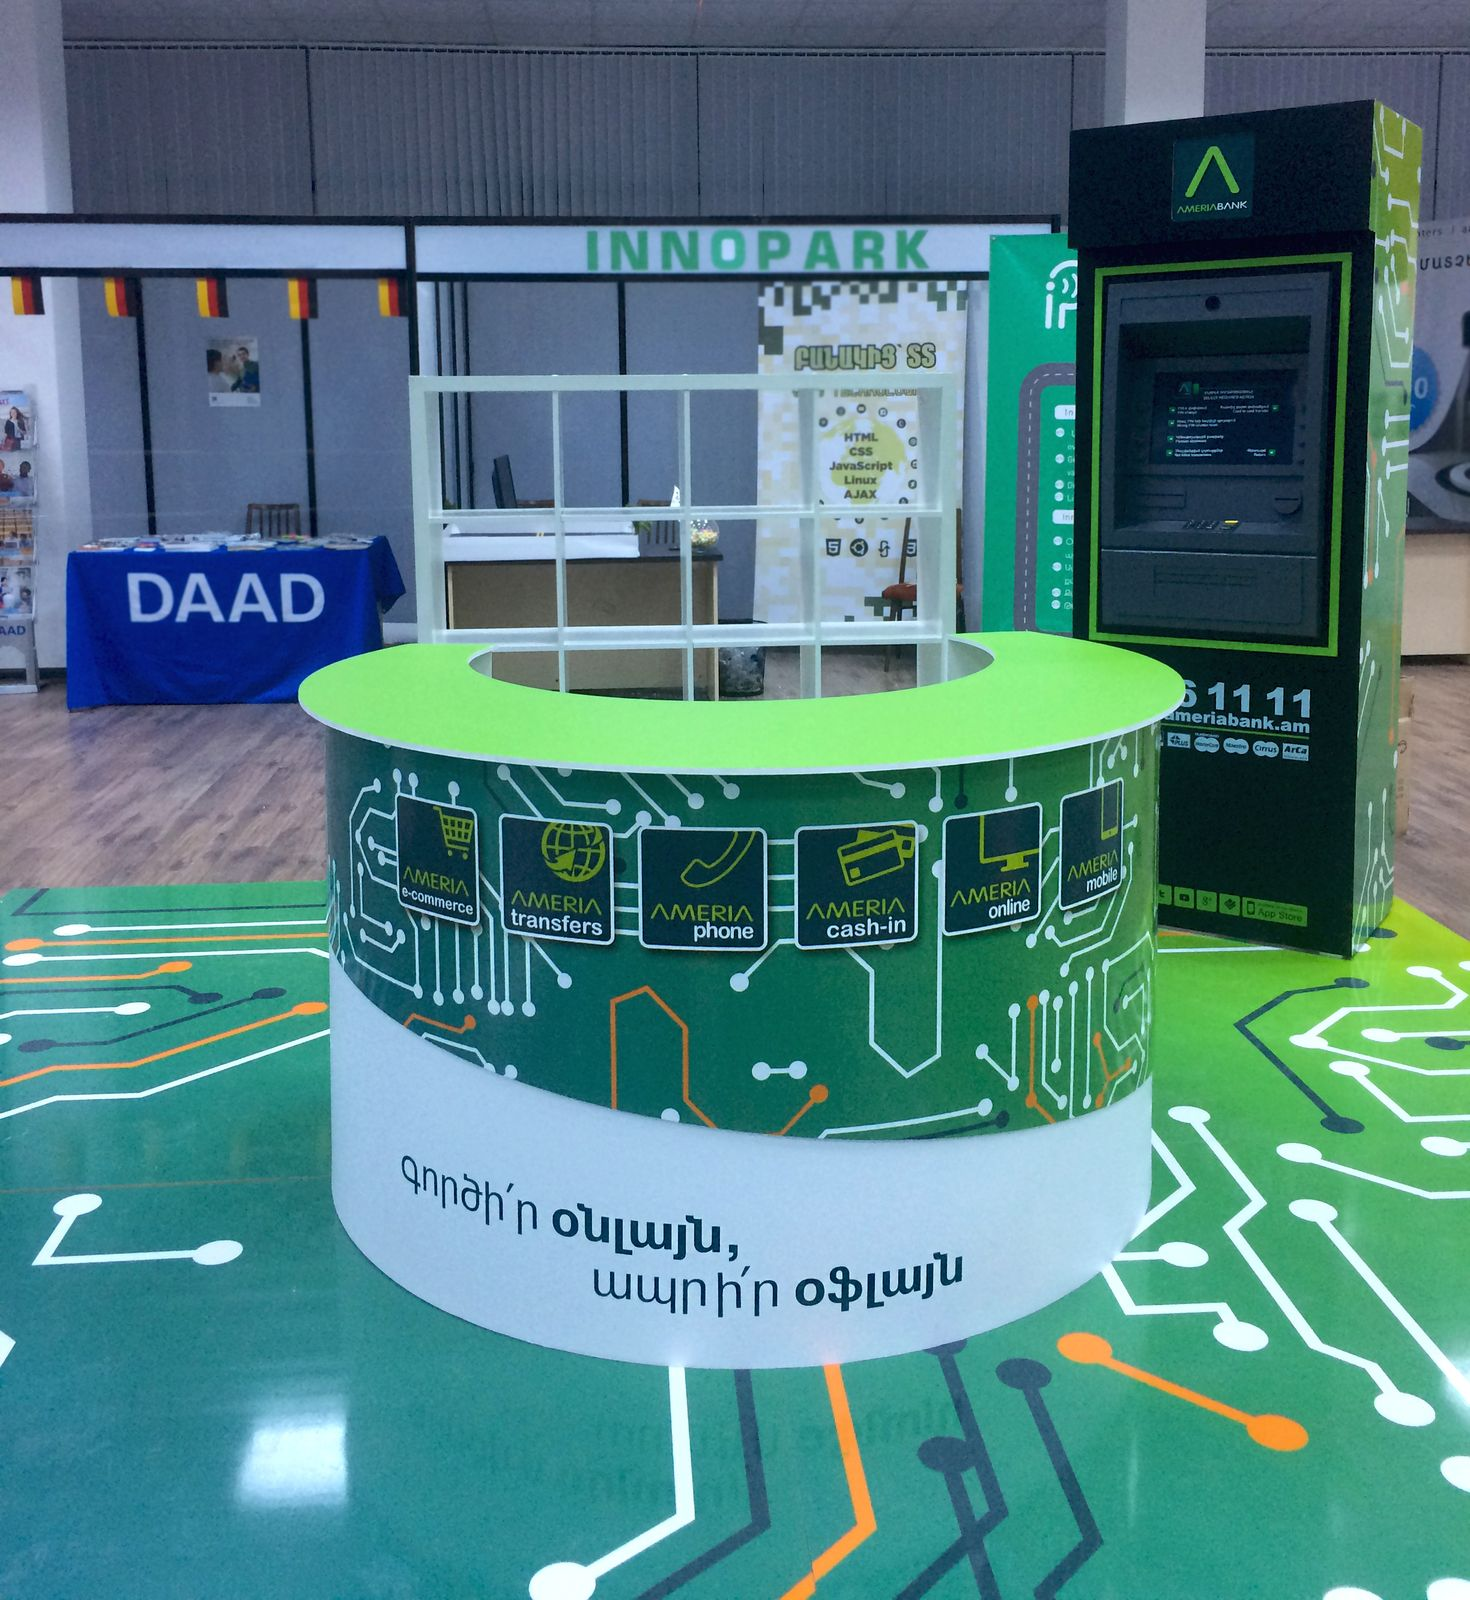 Innopark trade show booth display example-Frontsigns